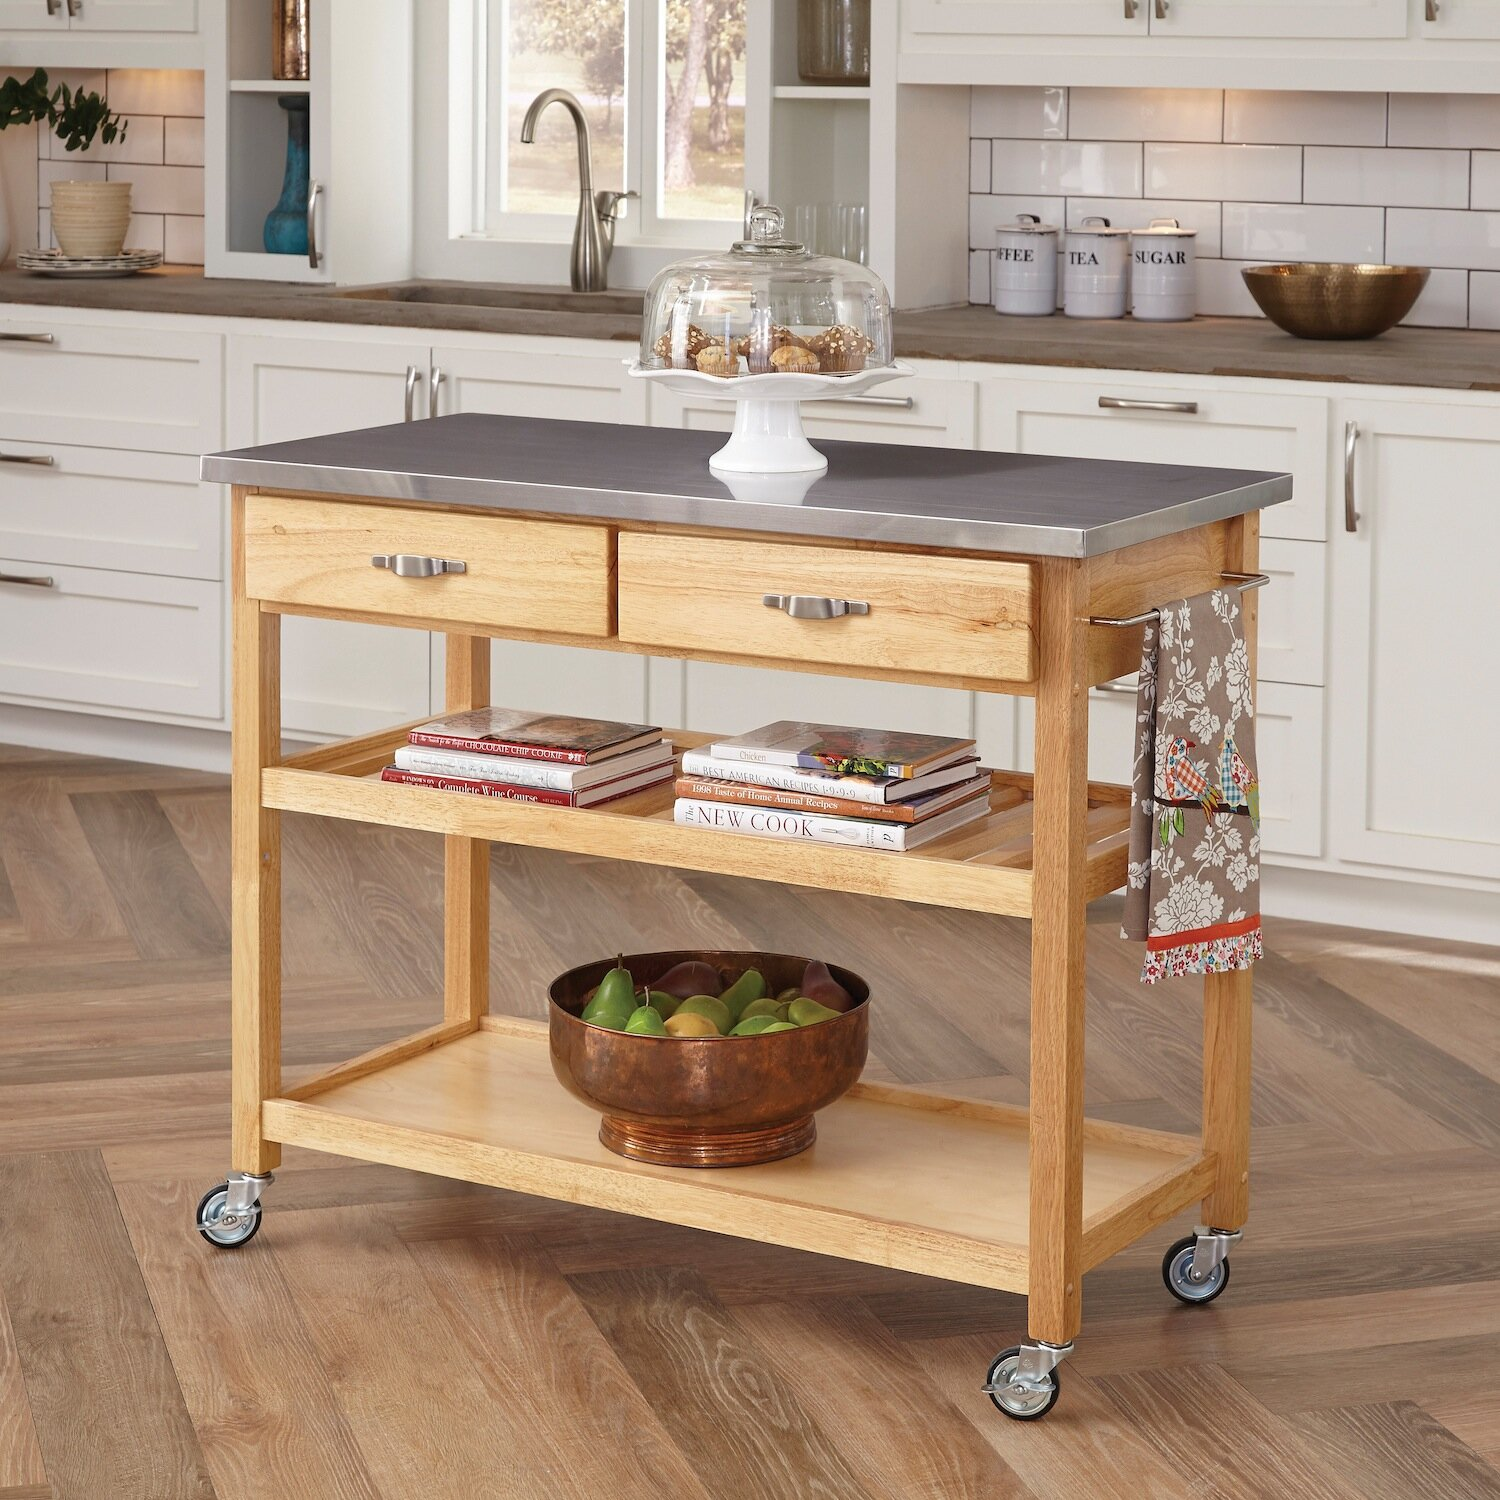 Amazing Stainless Kitchen Island #2: Drumtullagh Kitchen Island With Stainless Steel Top